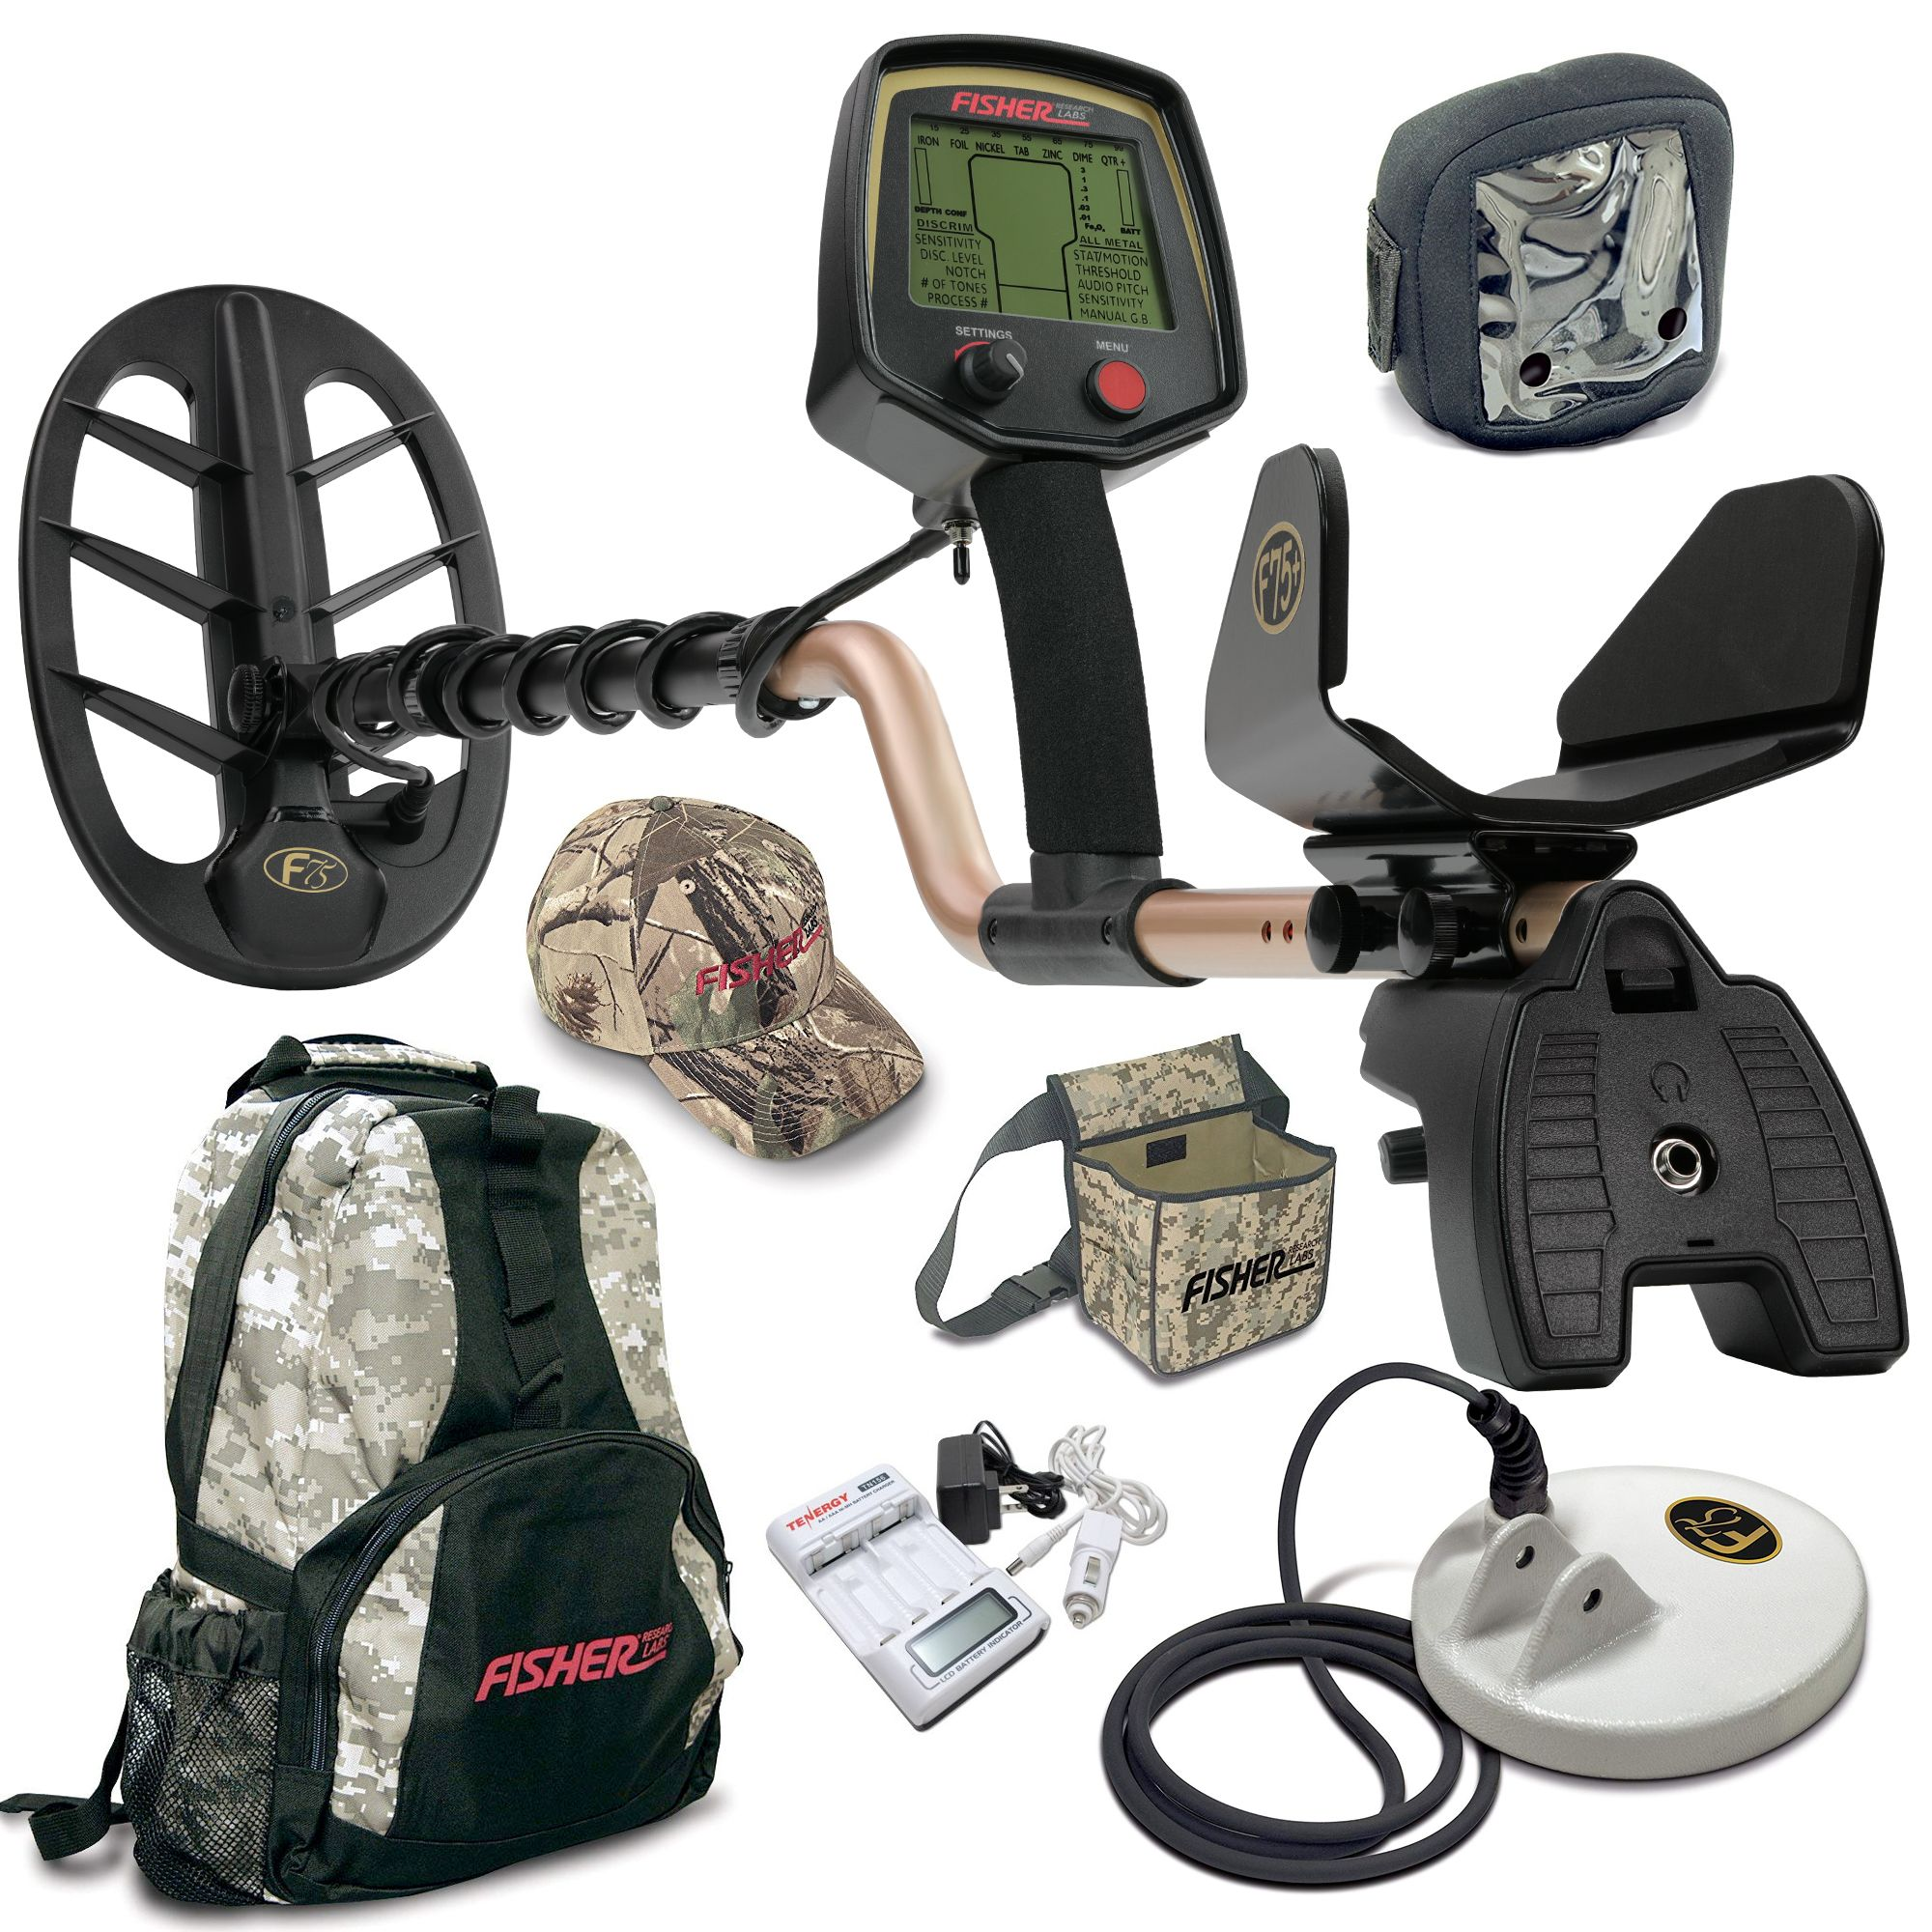 Fisher F75 Ltd Bundle with Two Coils and Covers Back Pack